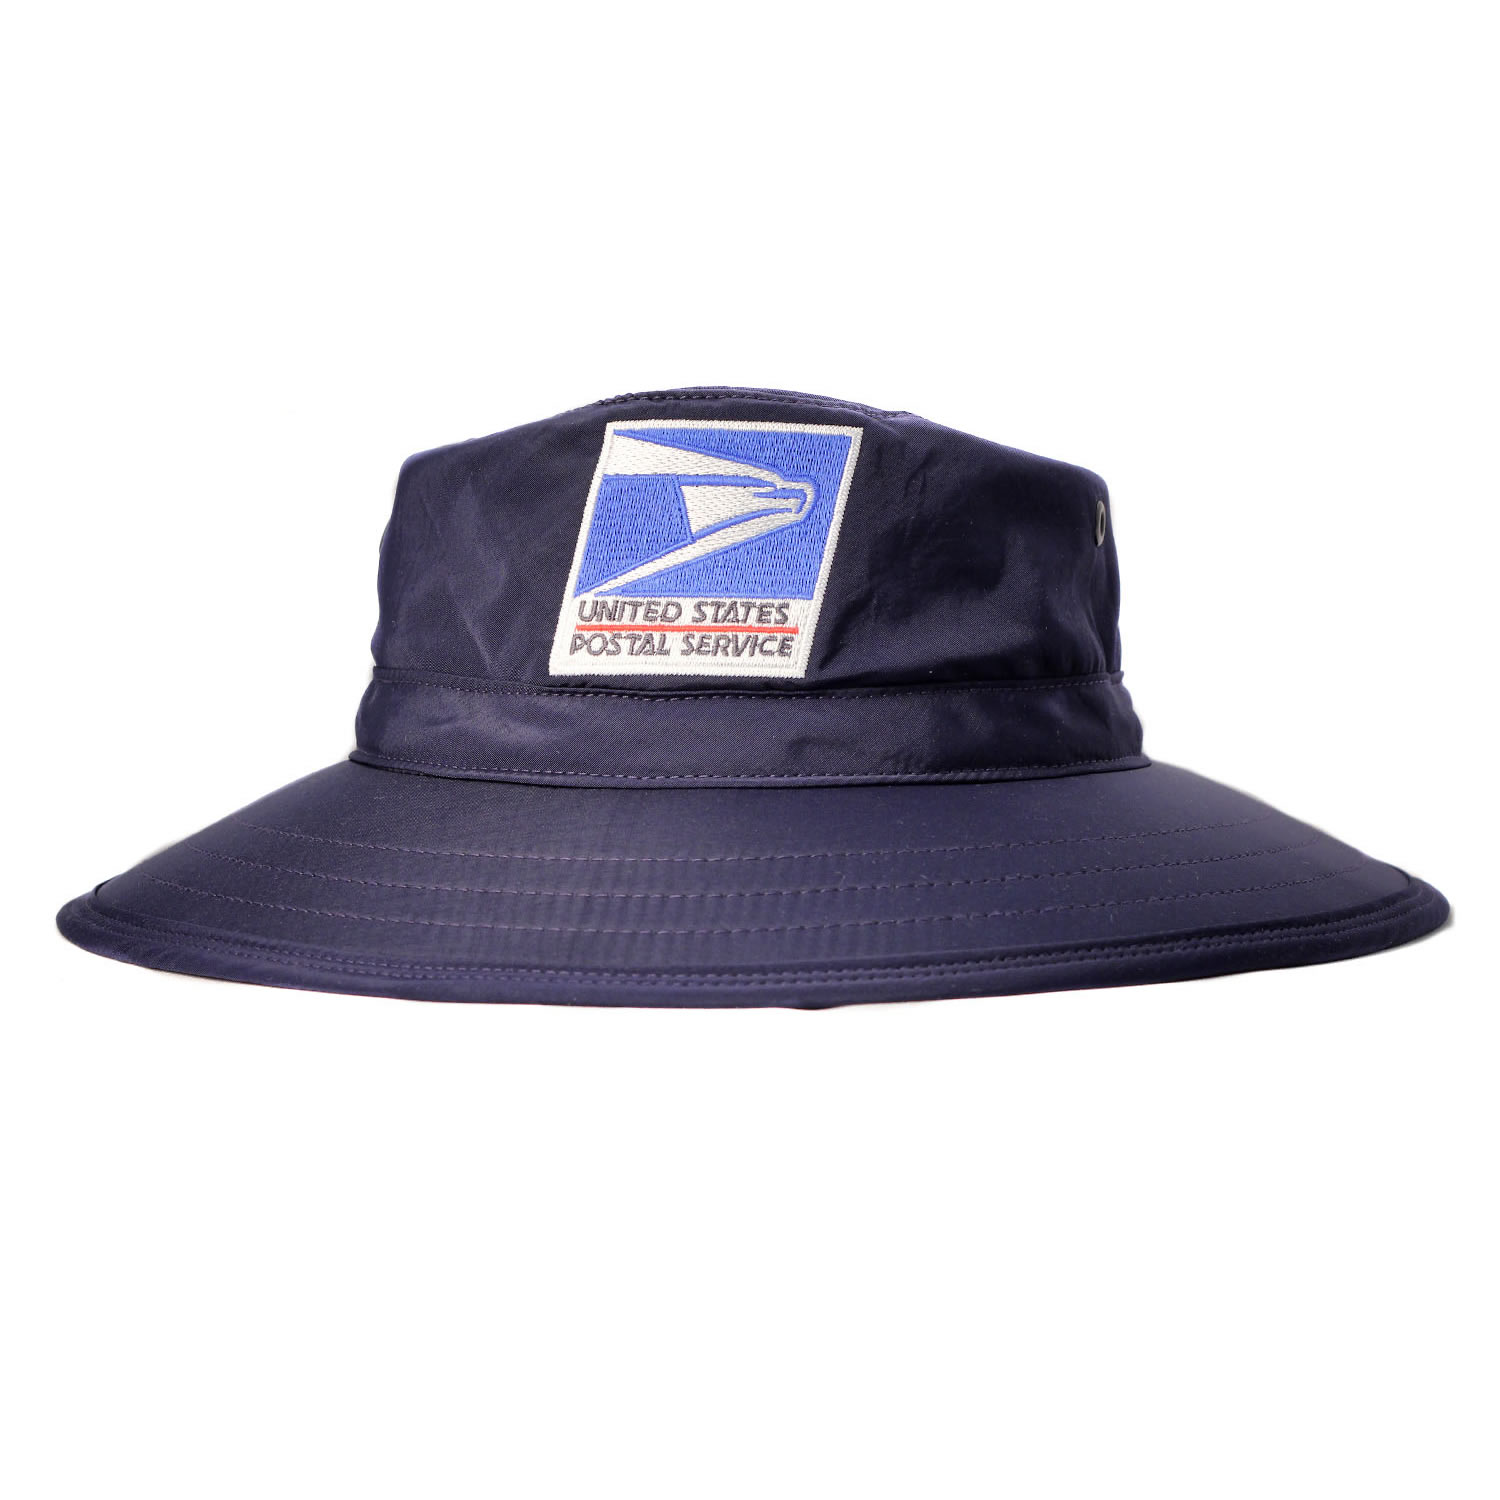 Sun Hat for Letter Carriers and MVS Operators (PX510)